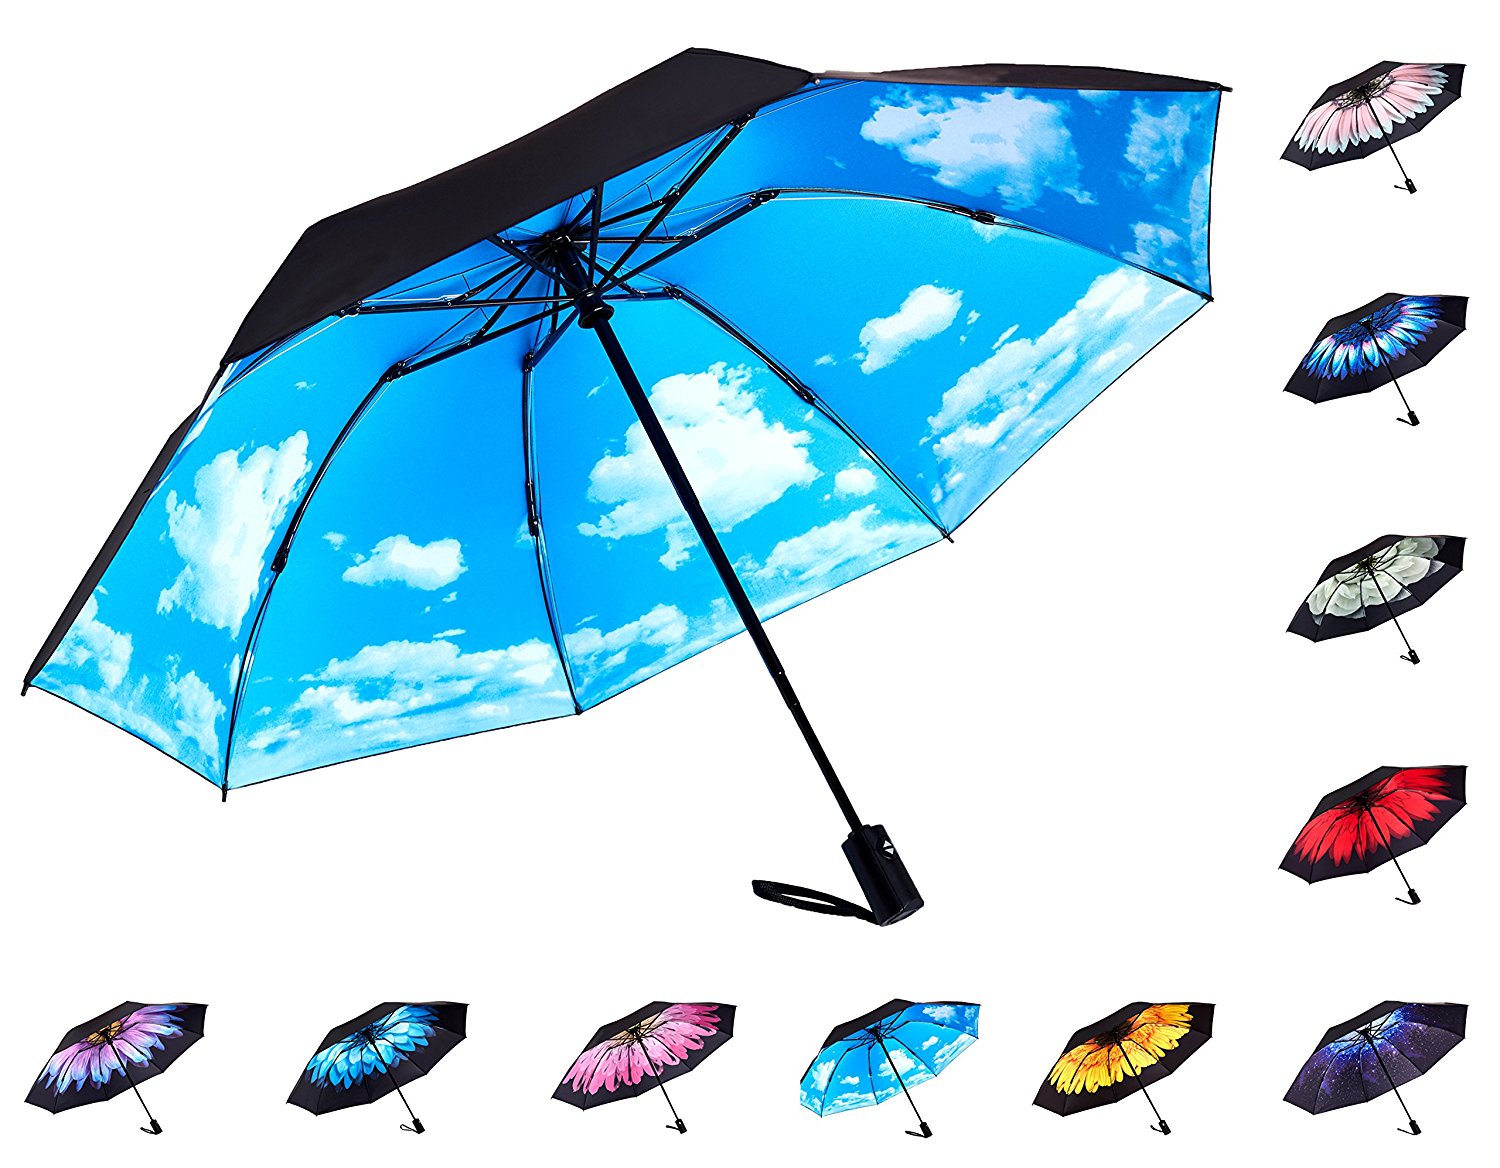 Reverse Inverted Compact Light Windproof Outdoor Umbrella - Auto Open Close